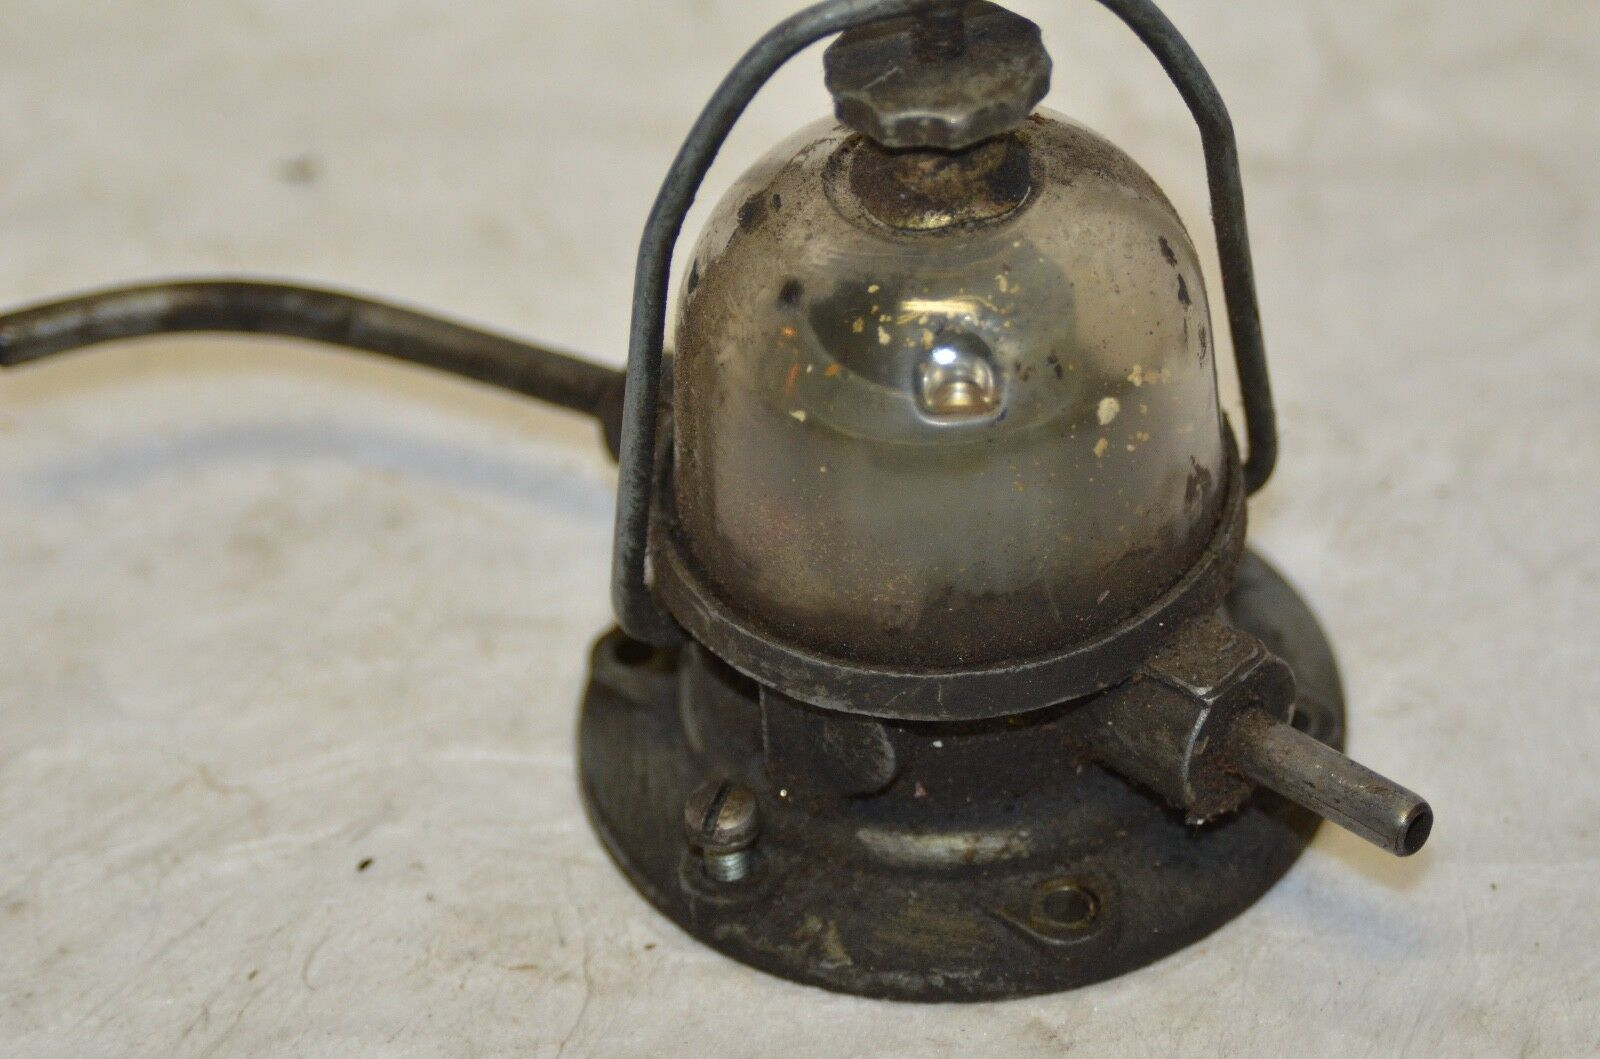 Original Ac Delco Vintage Glass Bowl Fuel Filter 6500 Picclick 1953 Dodge Truck 1 Of 5only Available